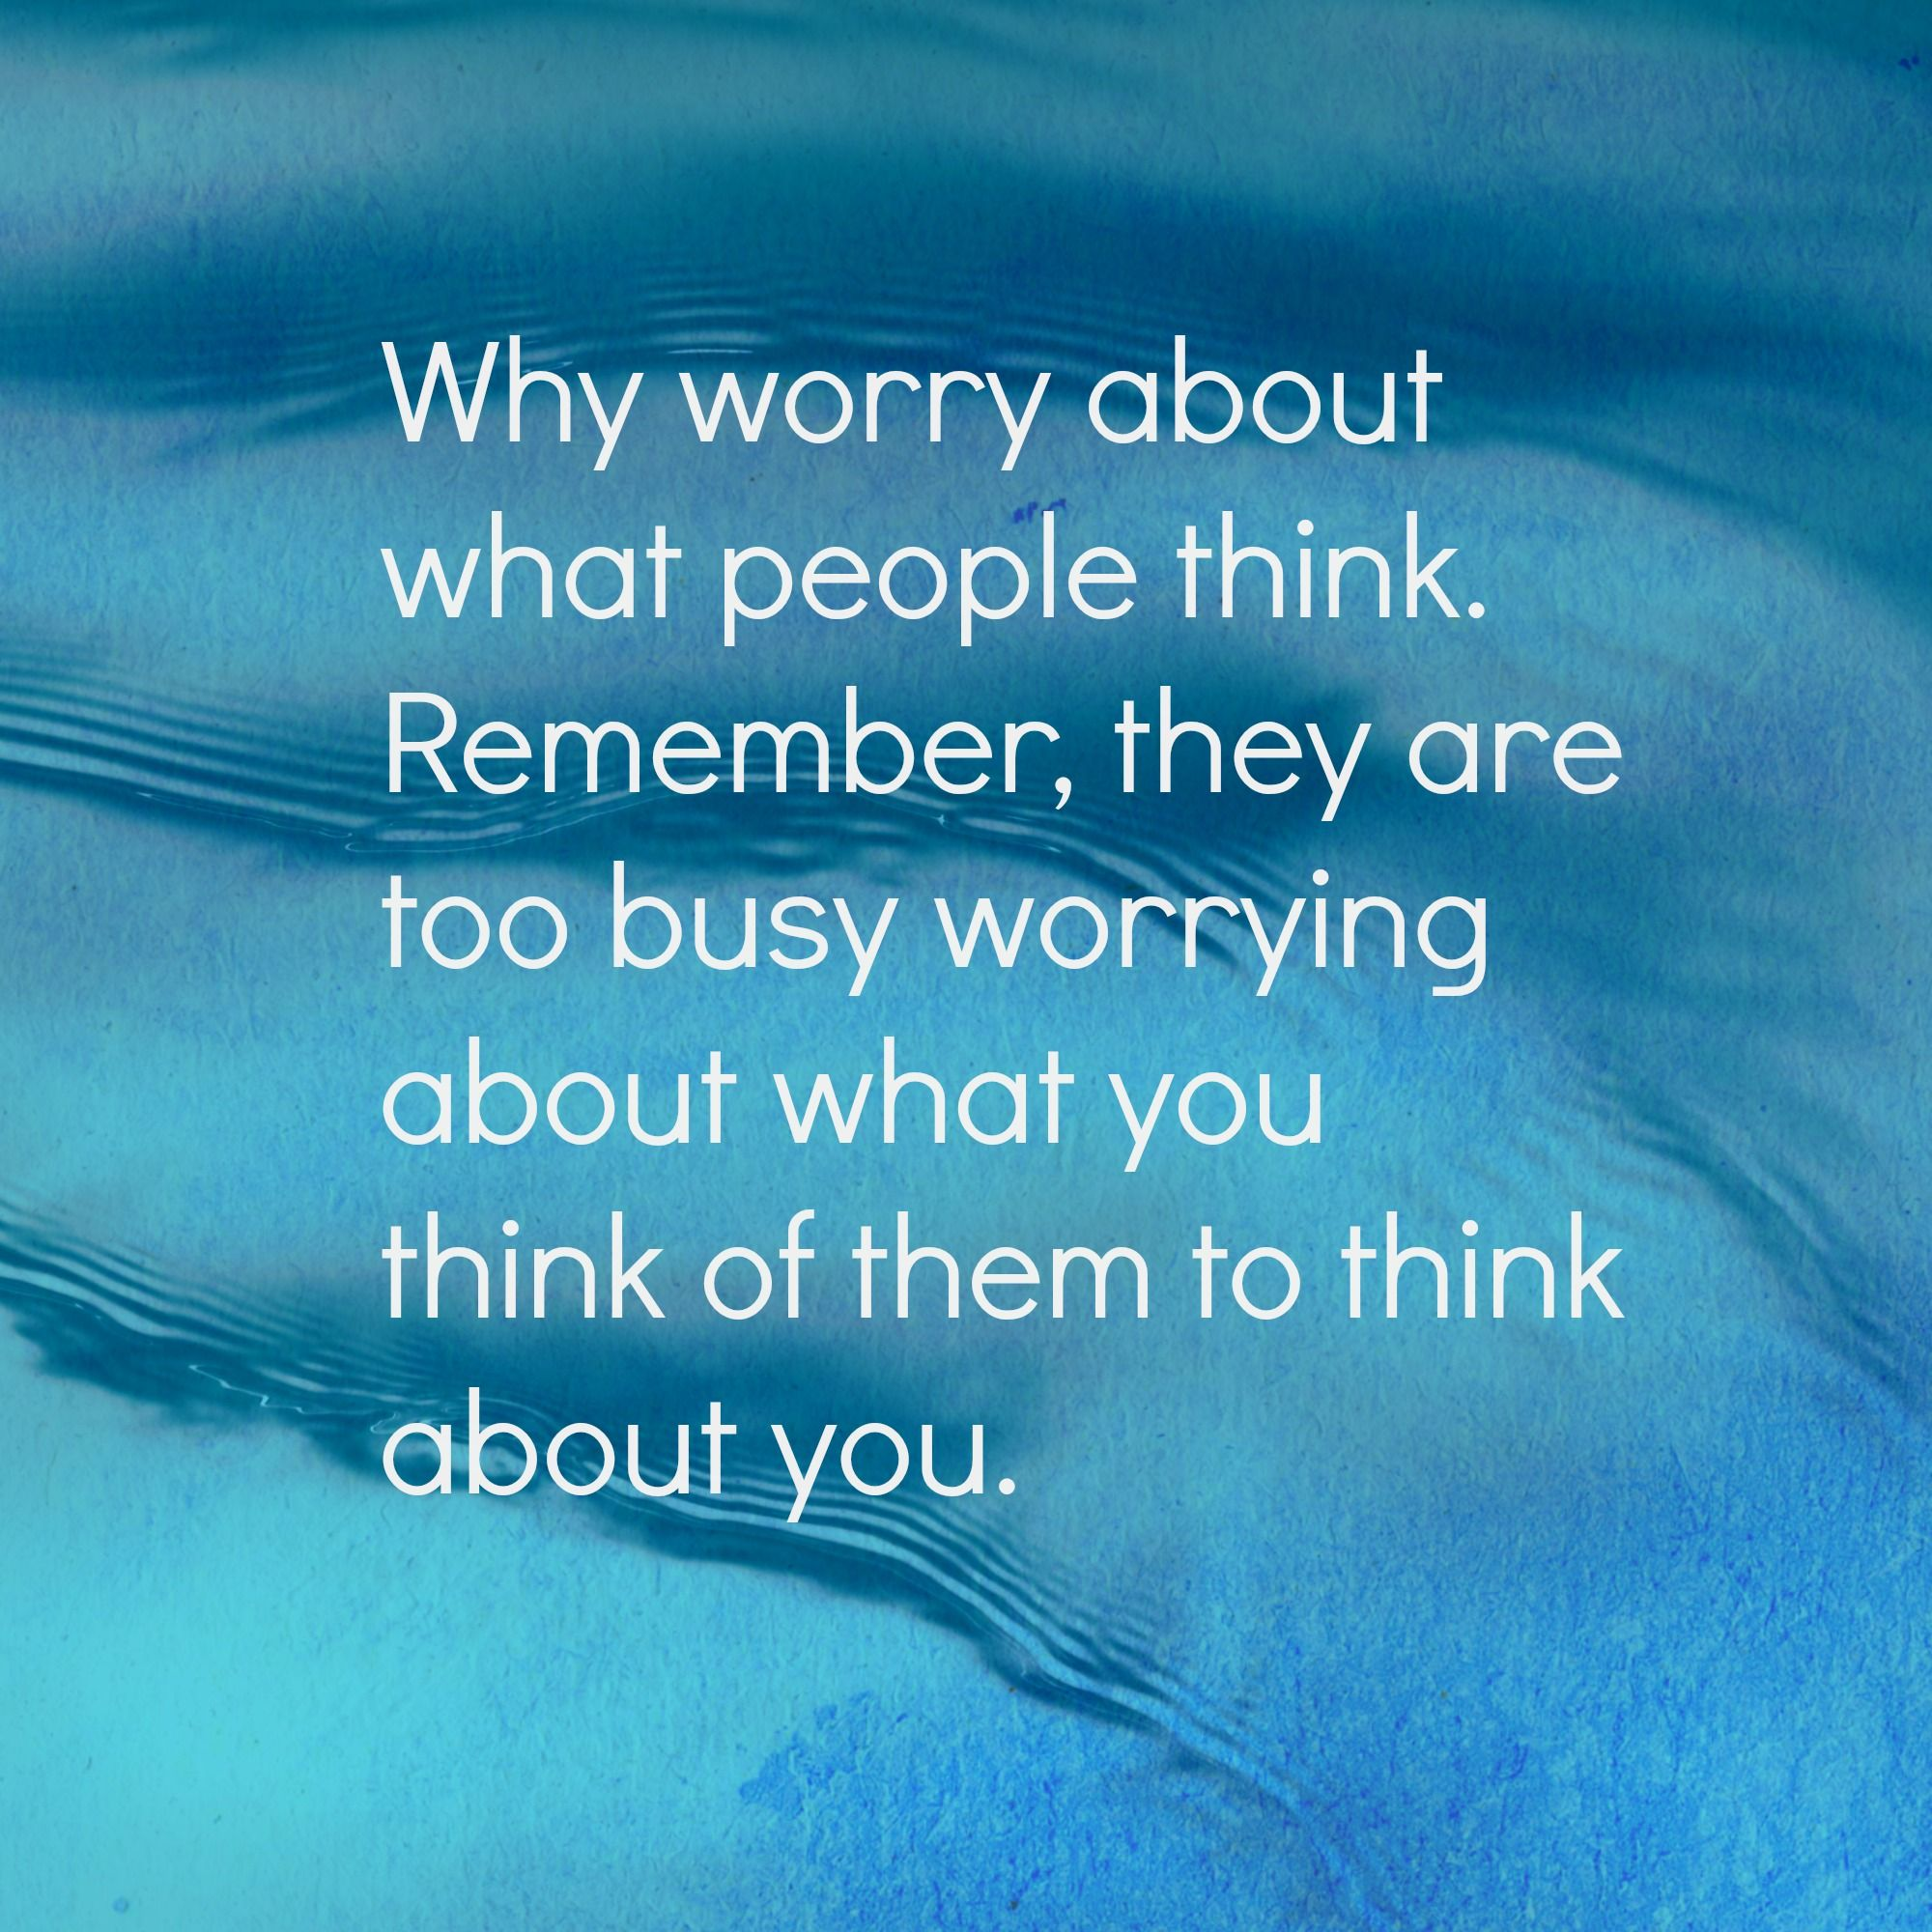 Don't worry about what other's think. It doesn't matter.